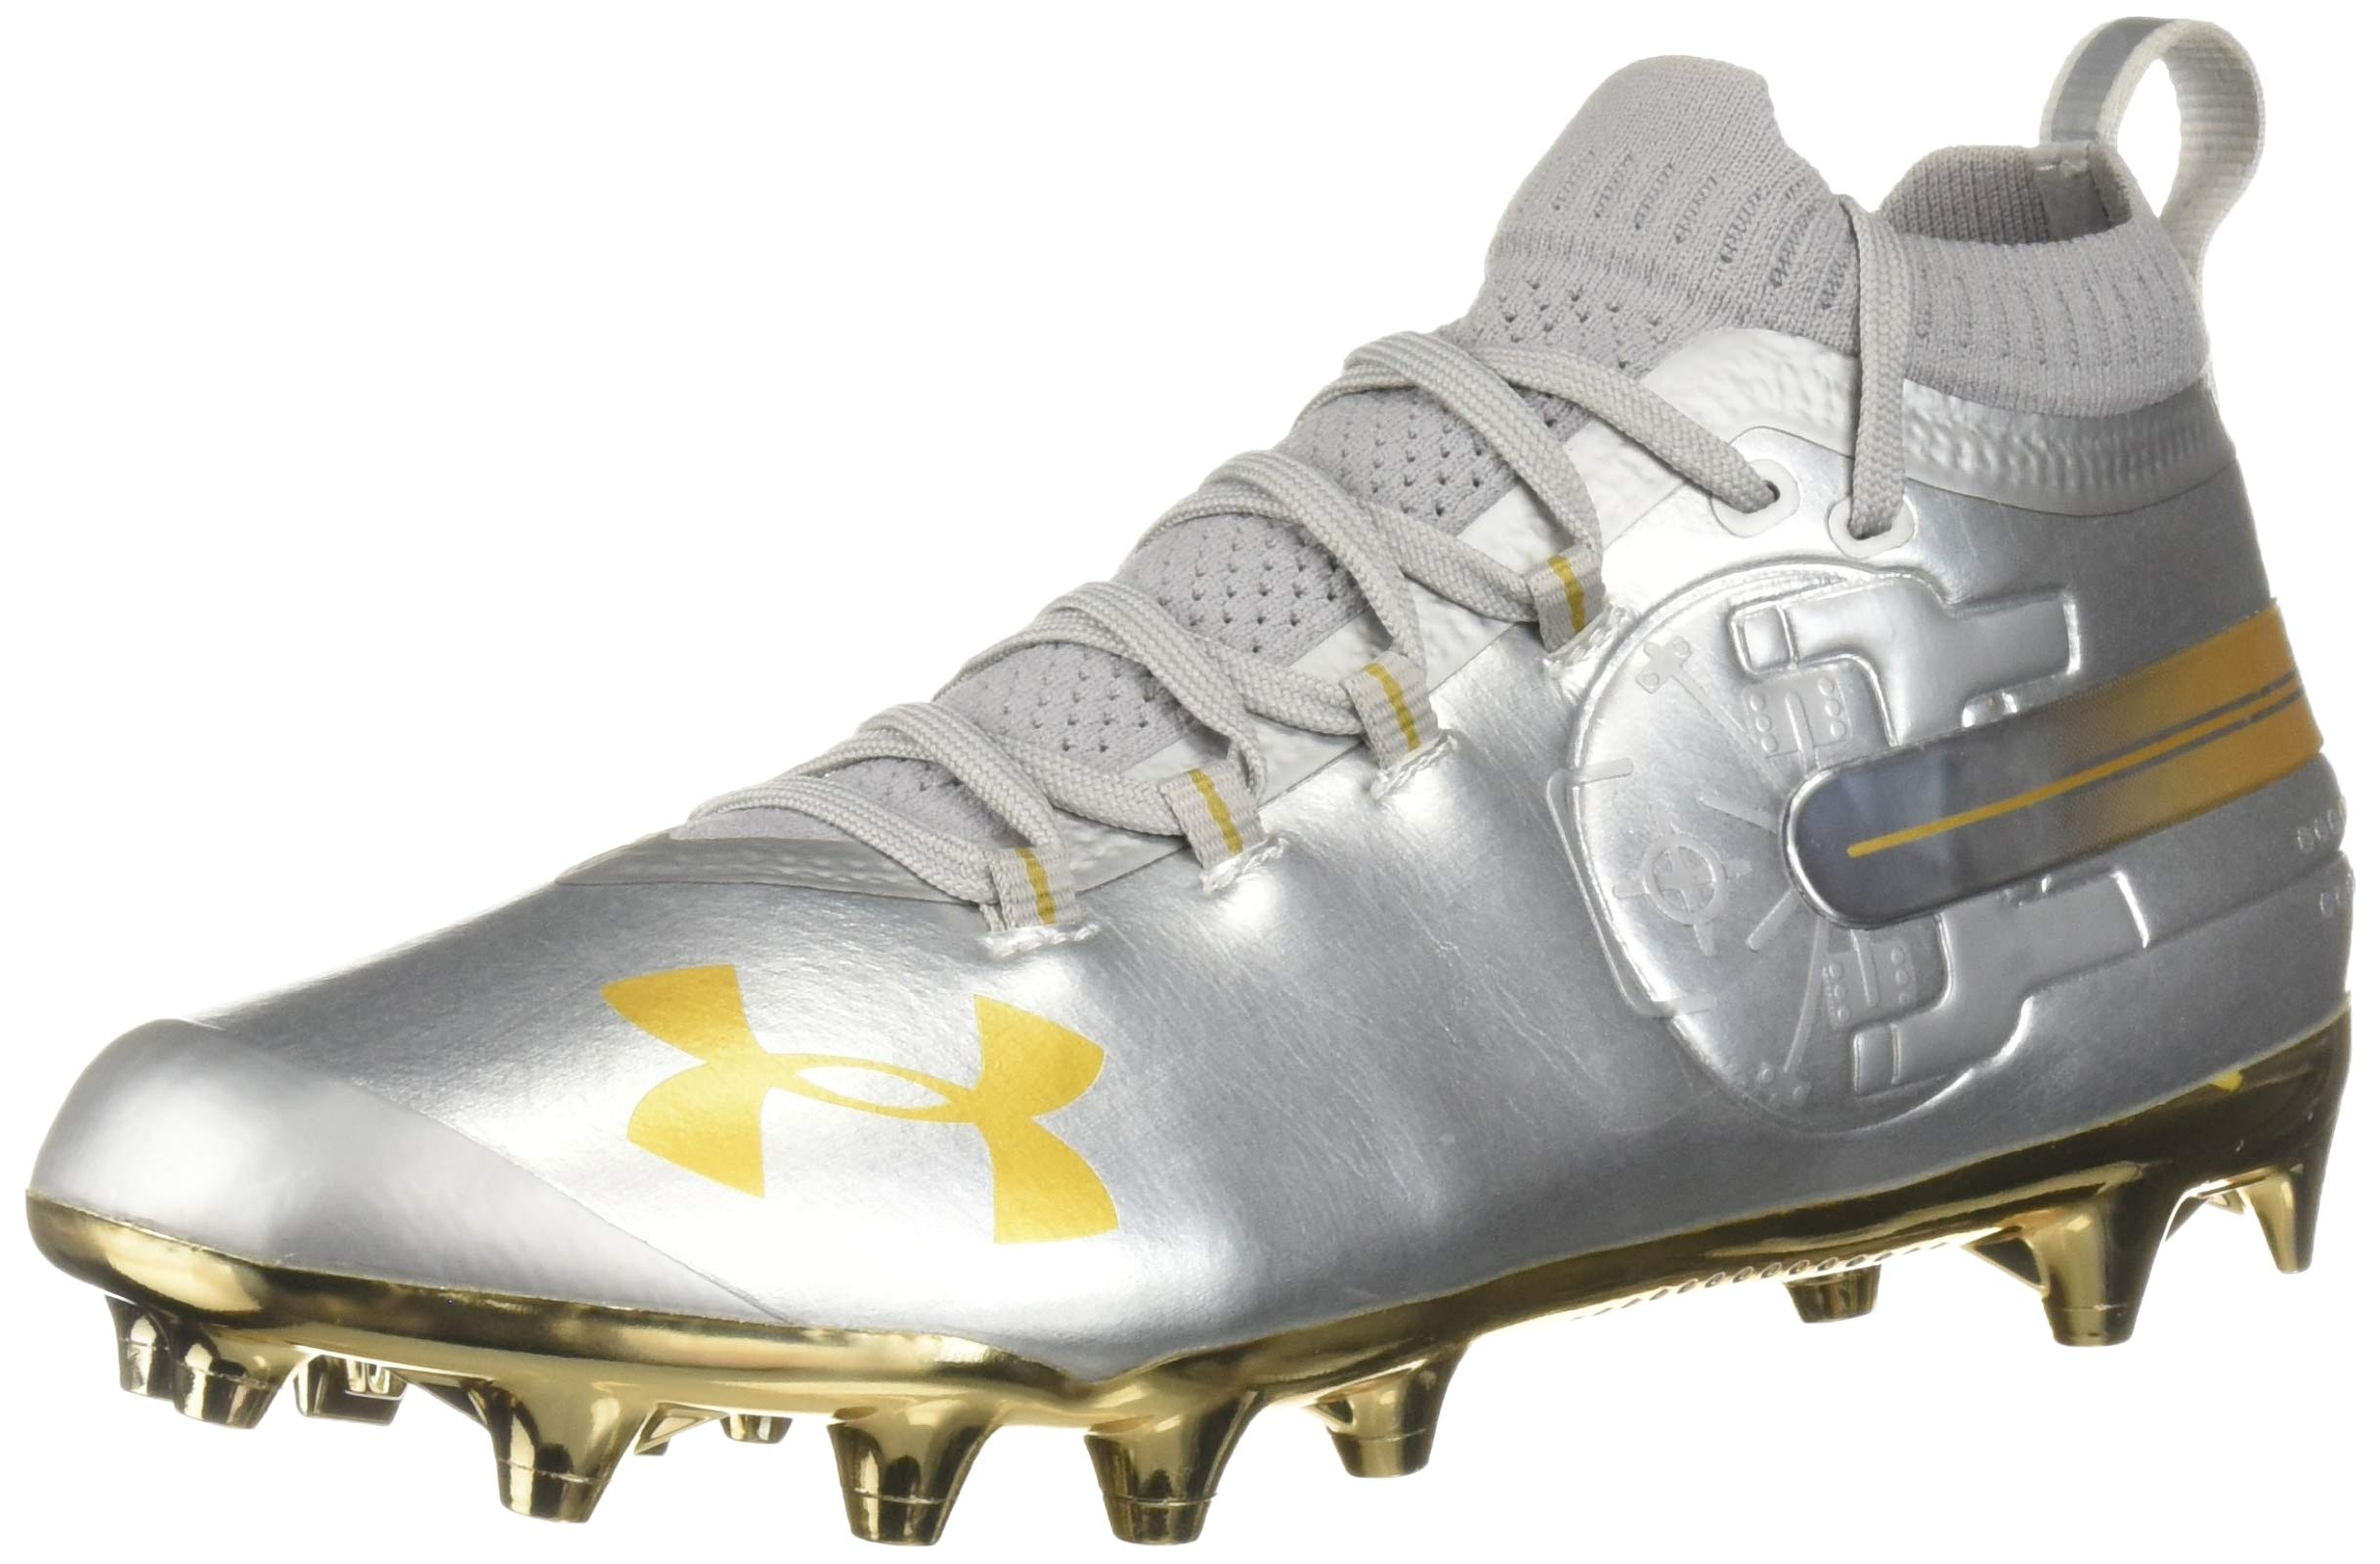 Under Armour Men's Spotlight-Limited Edition Football Shoe, Silver (100)/Metallic Gold, 11 by Under Armour